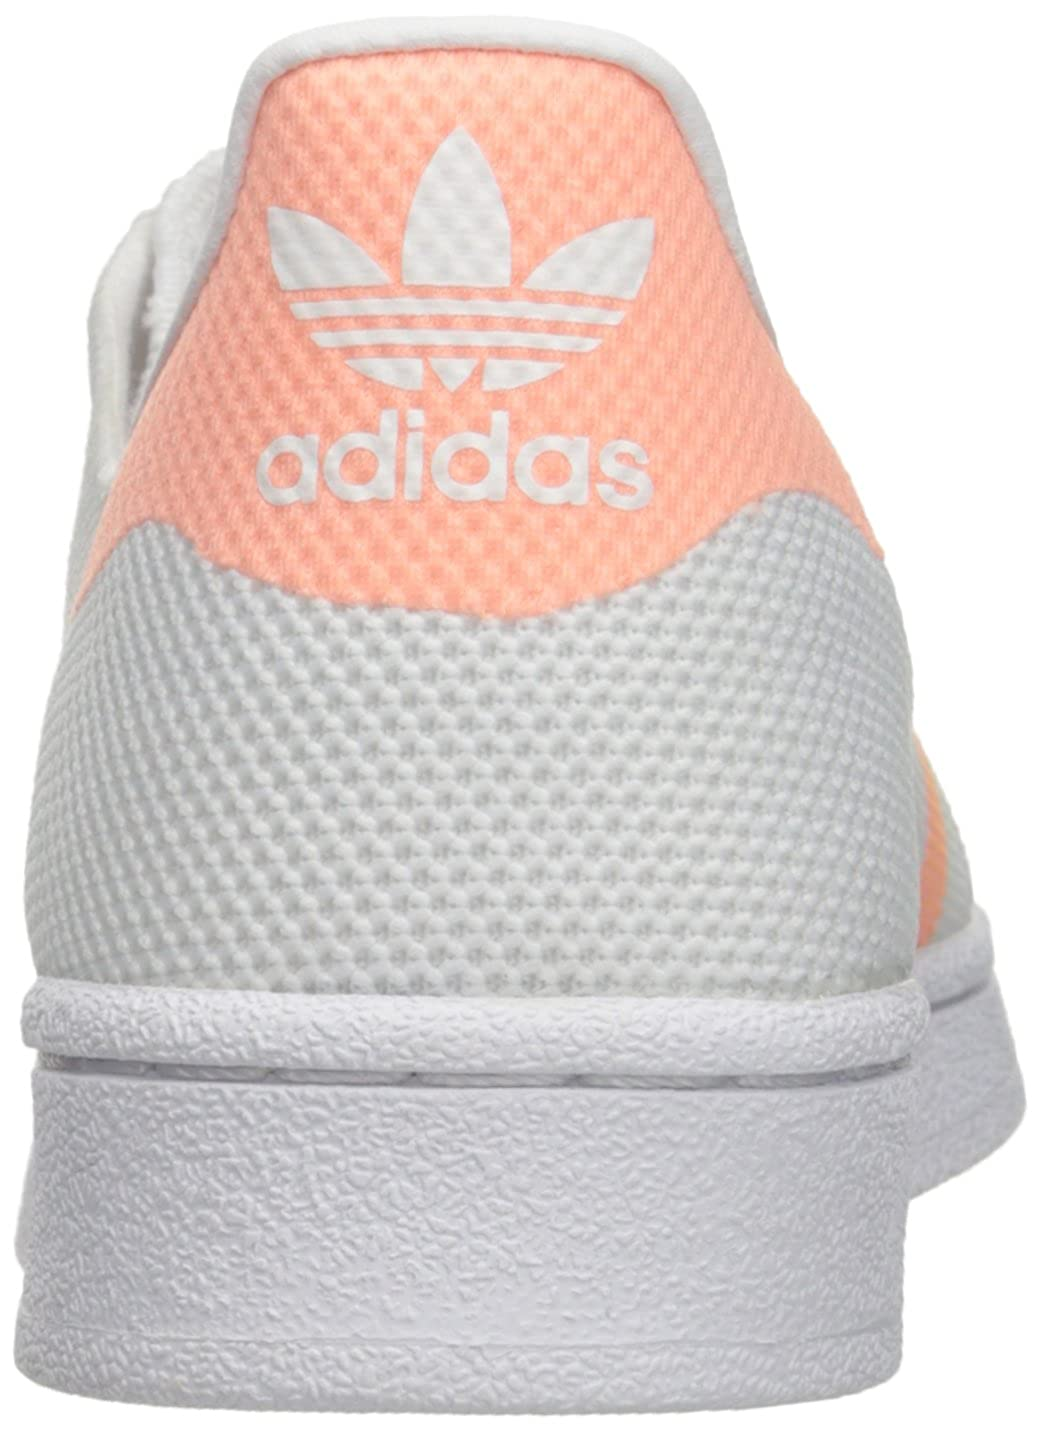 Adidas-Superstar-Women-039-s-Fashion-Casual-Sneakers-Athletic-Shoes-Originals thumbnail 49